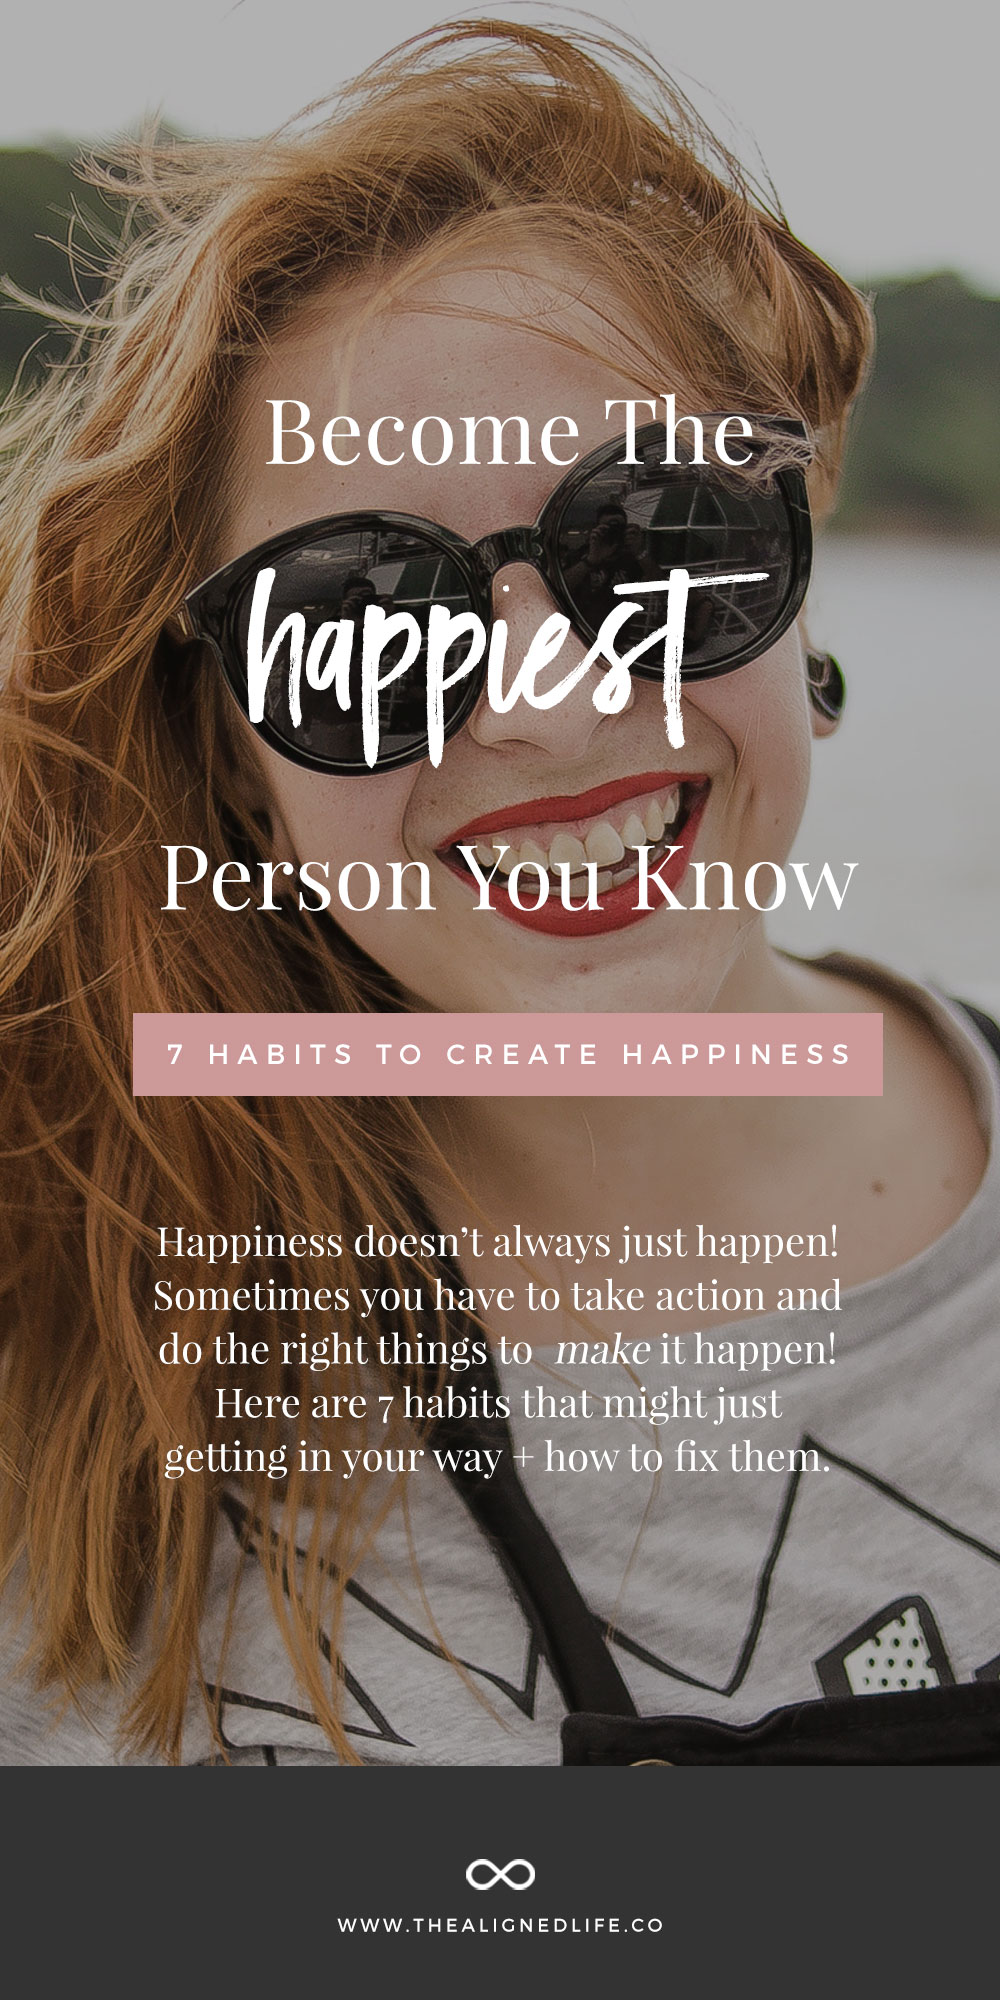 Become The Happiest Person You Know! 7 Habits For Happiness